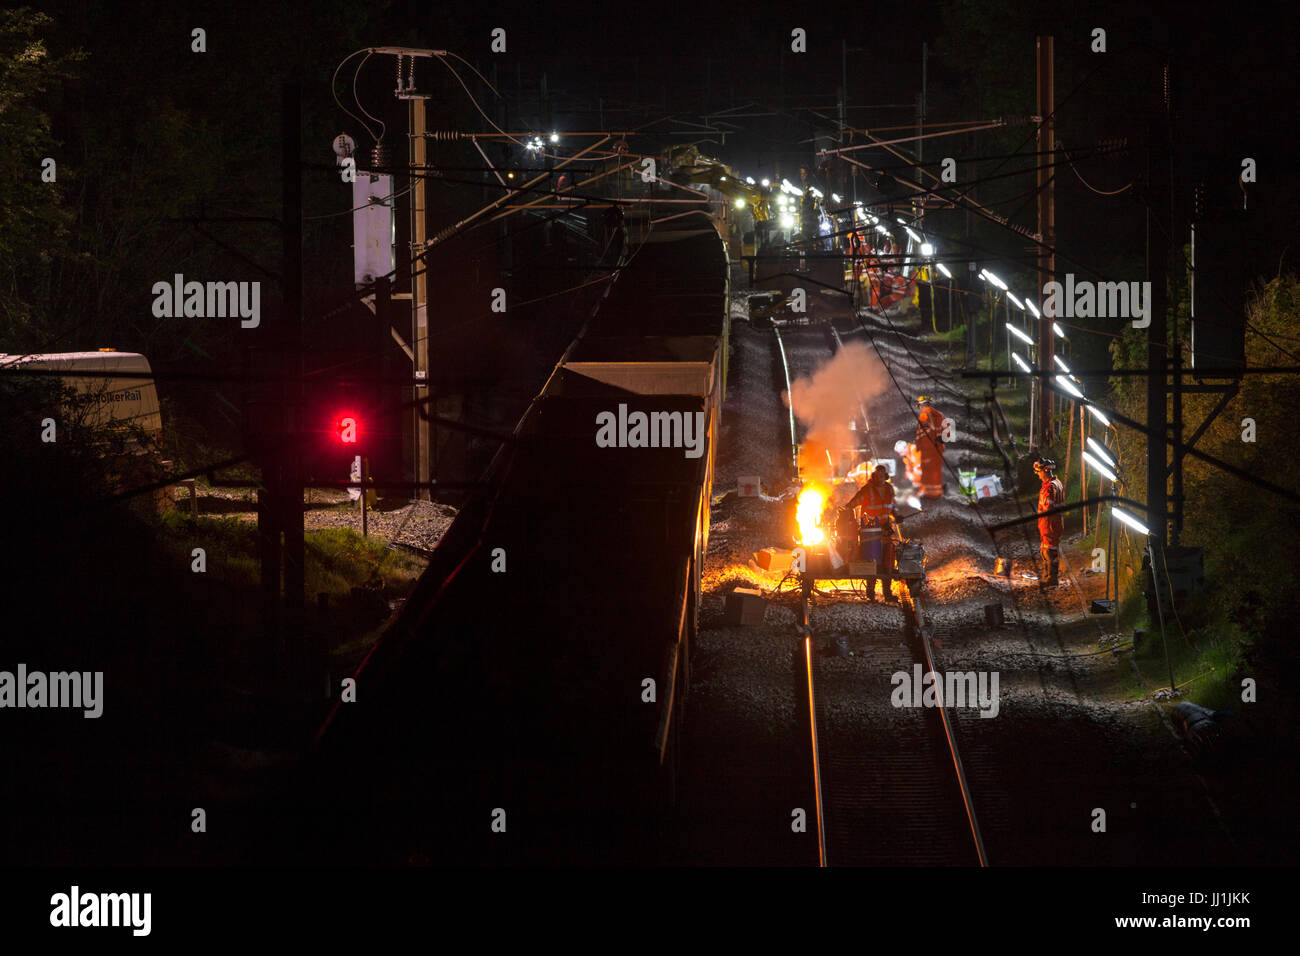 Bay Horse (South of Lancaster)  thermite welding rails during night time  track renewal engineering work  on west - Stock Image